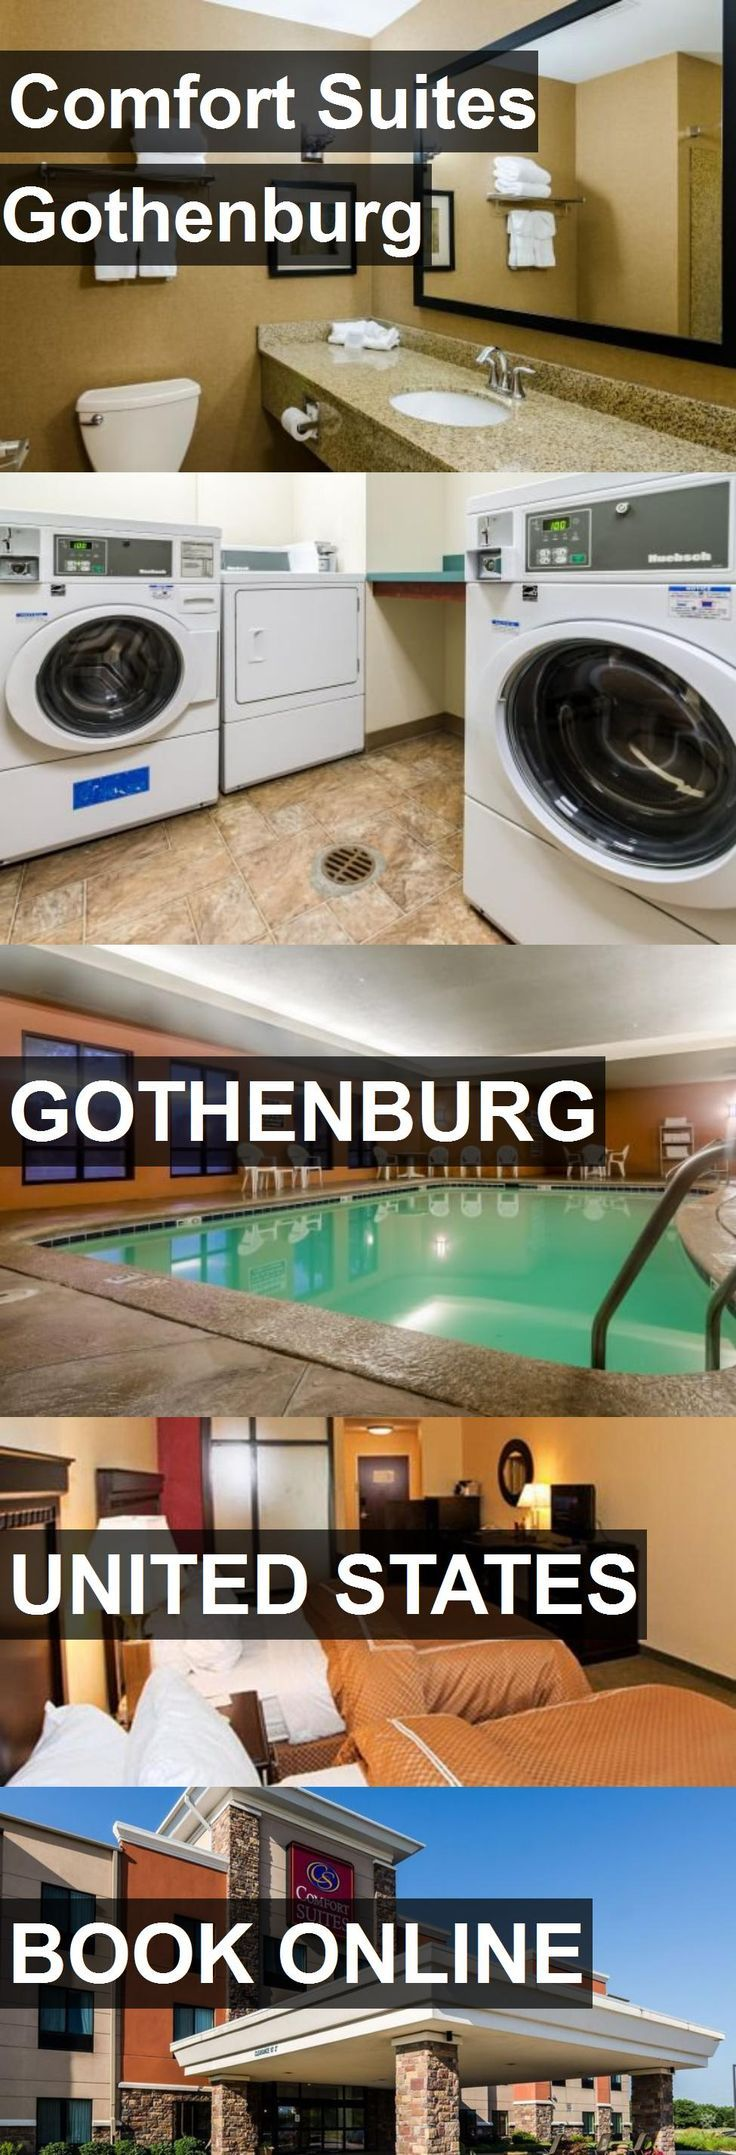 Hotel Comfort Suites Gothenburg in Gothenburg, Uni…